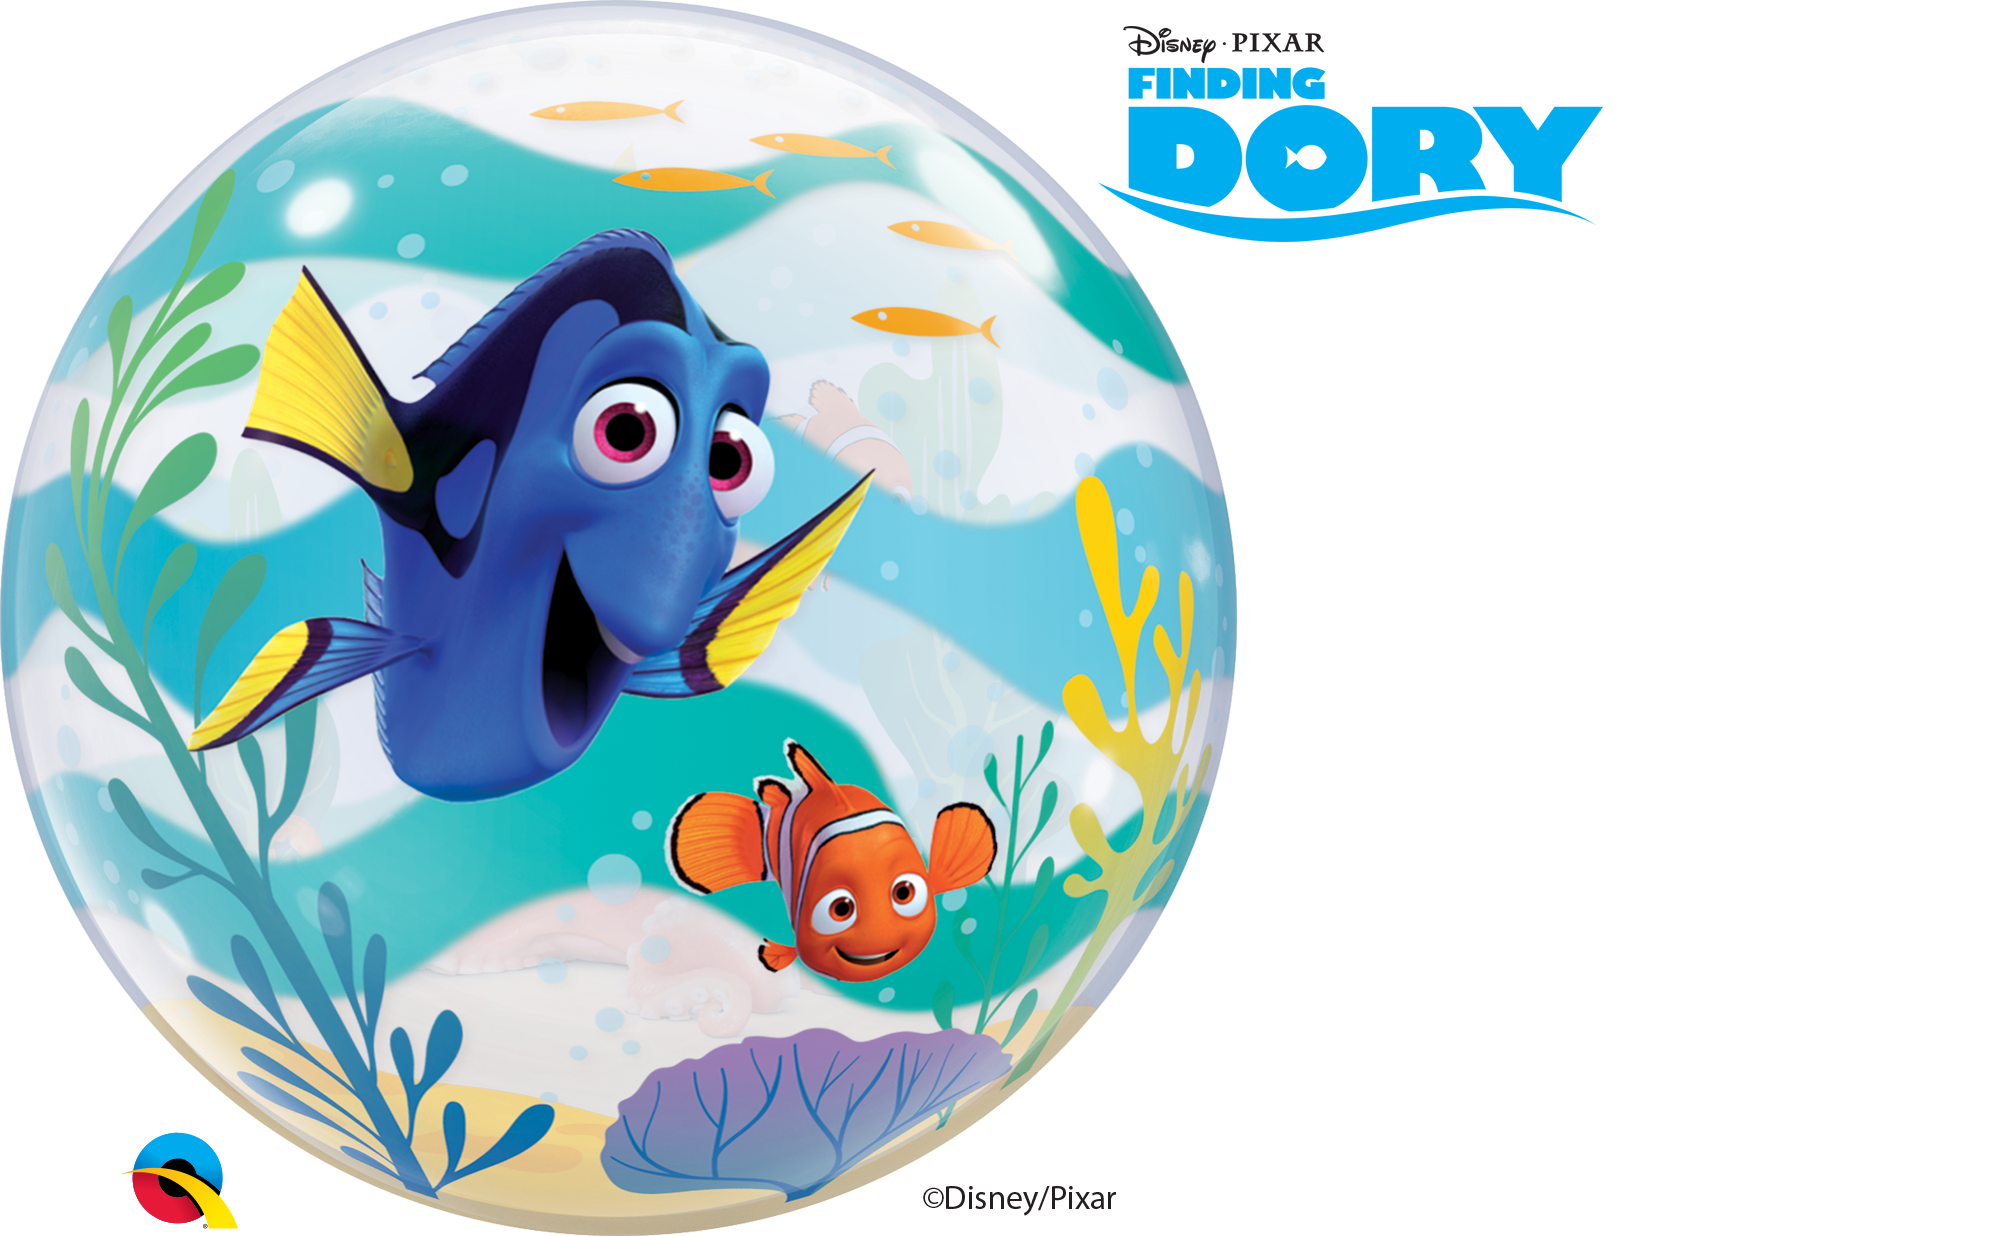 Bubbles and fish clipart svg transparent stock Finding Dory Bubble Balloon svg transparent stock